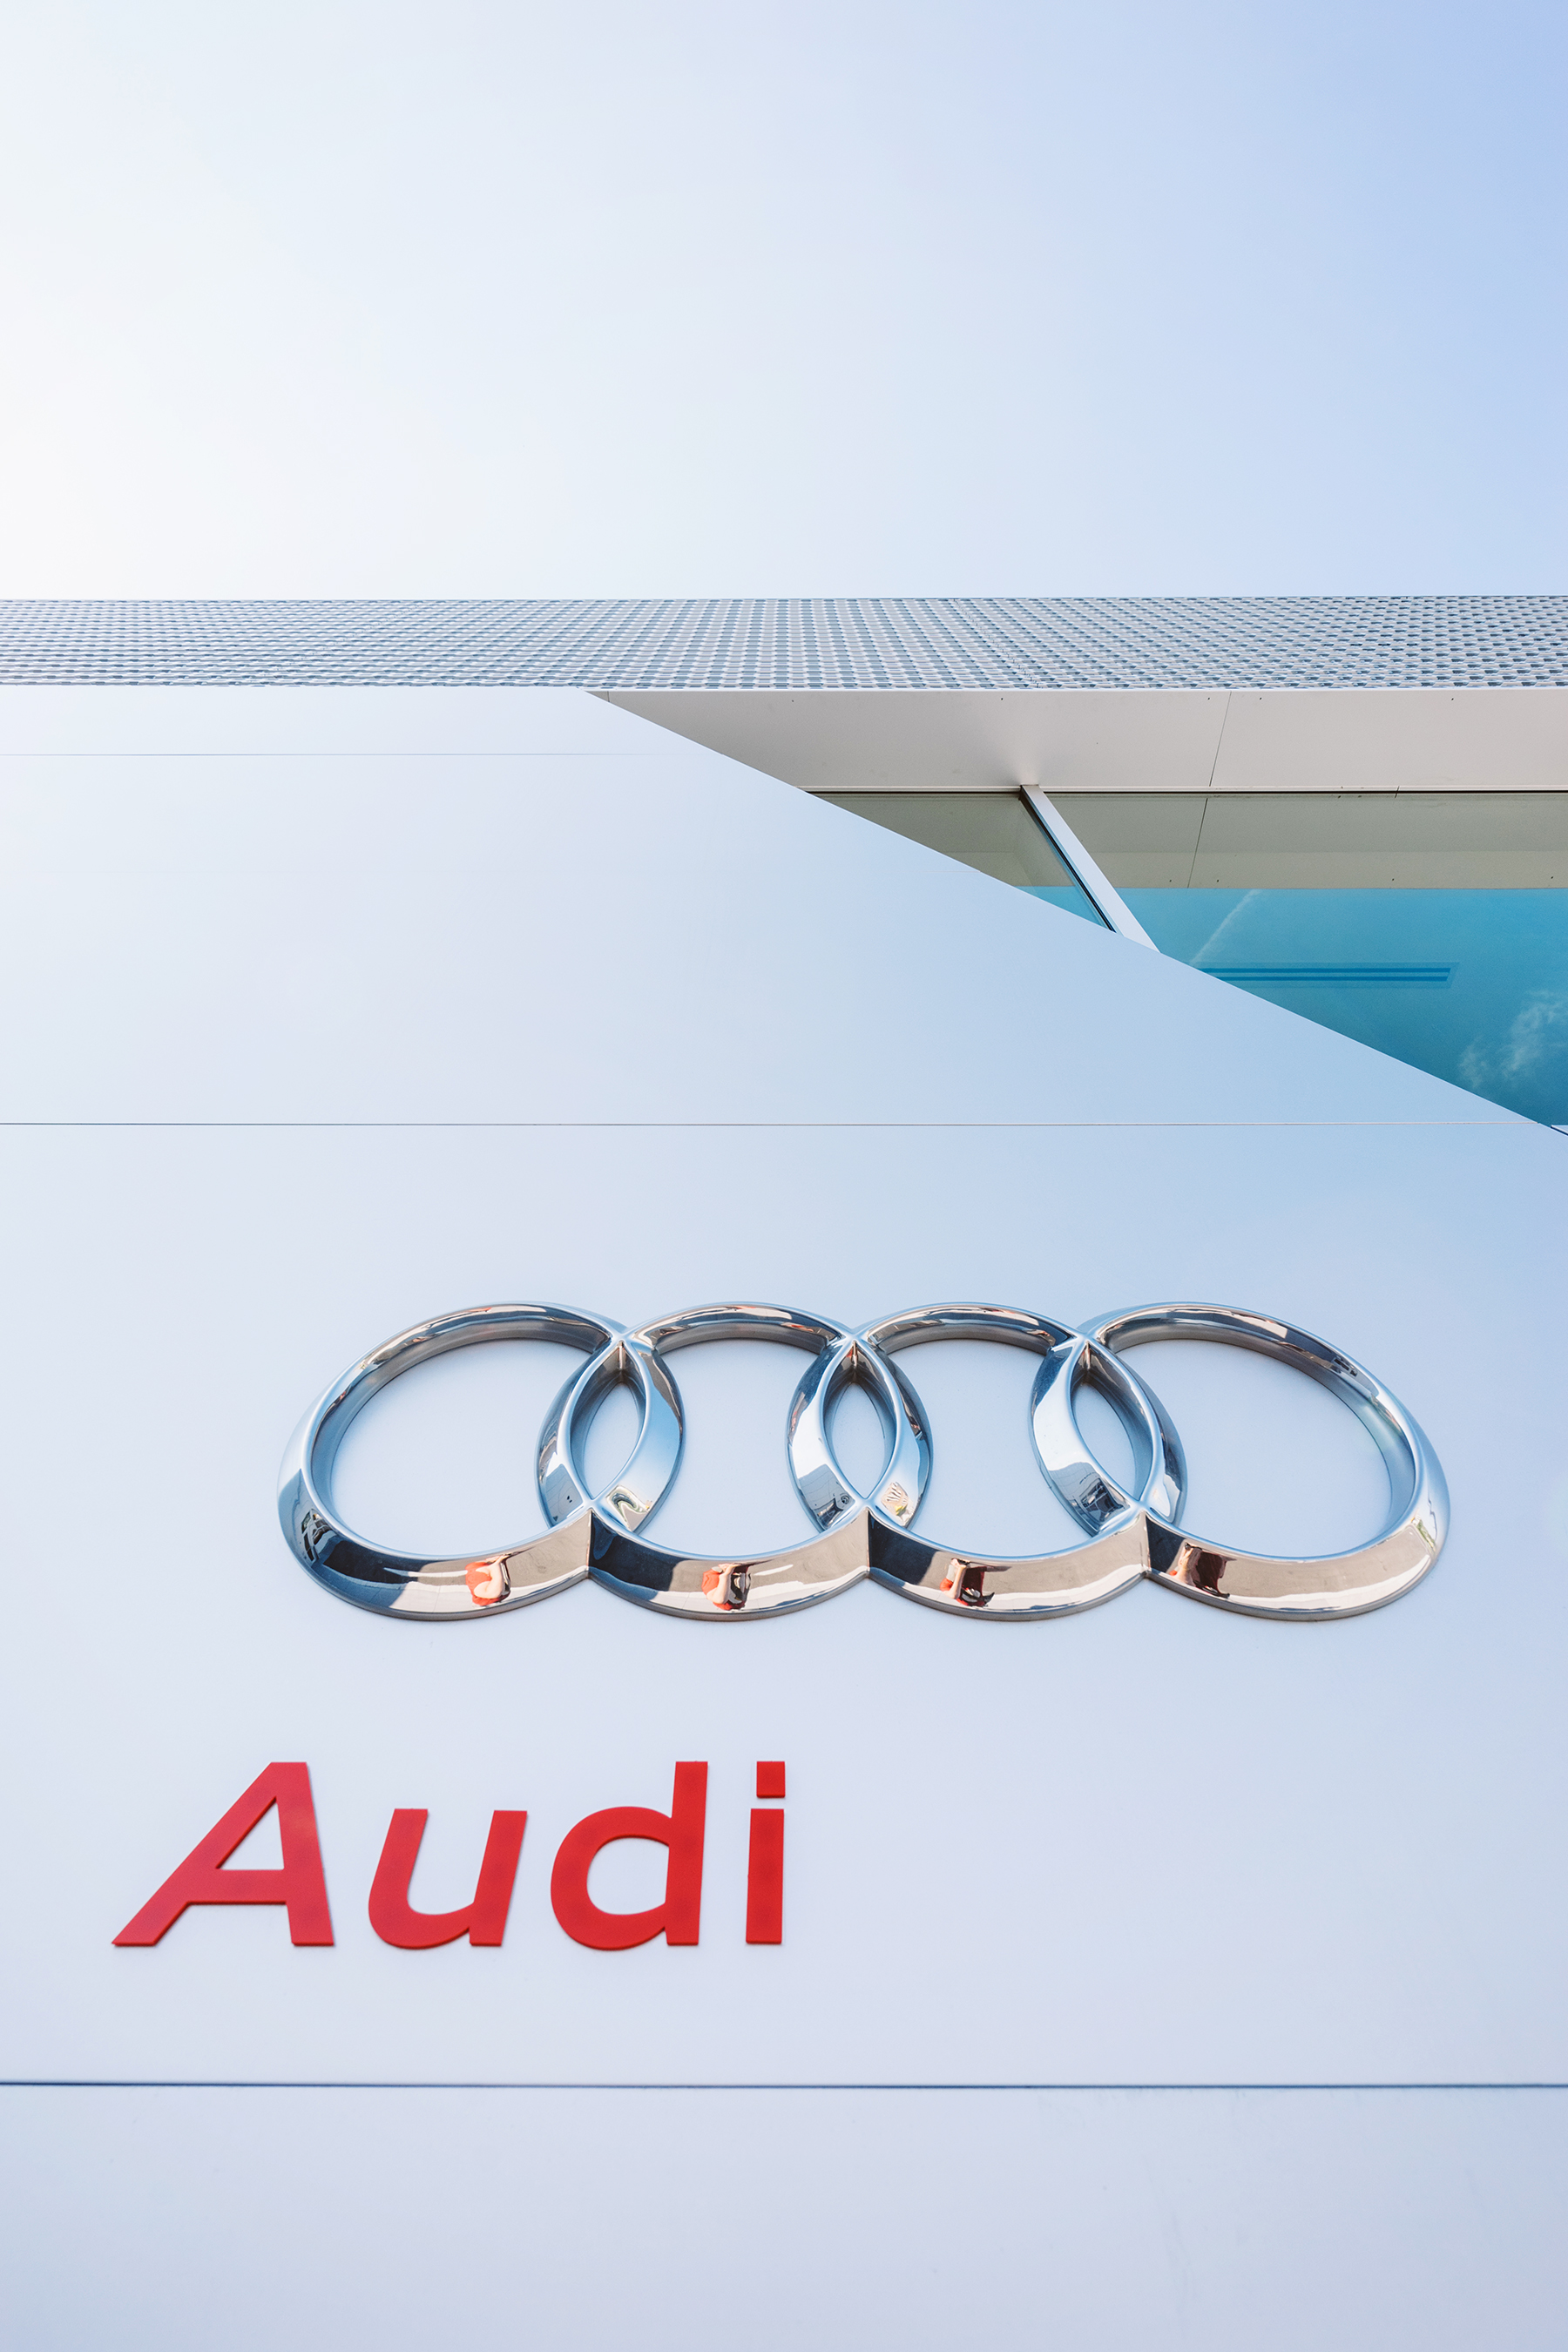 Architectural Photographer Scott Webb shoots the Exterior of Audi London